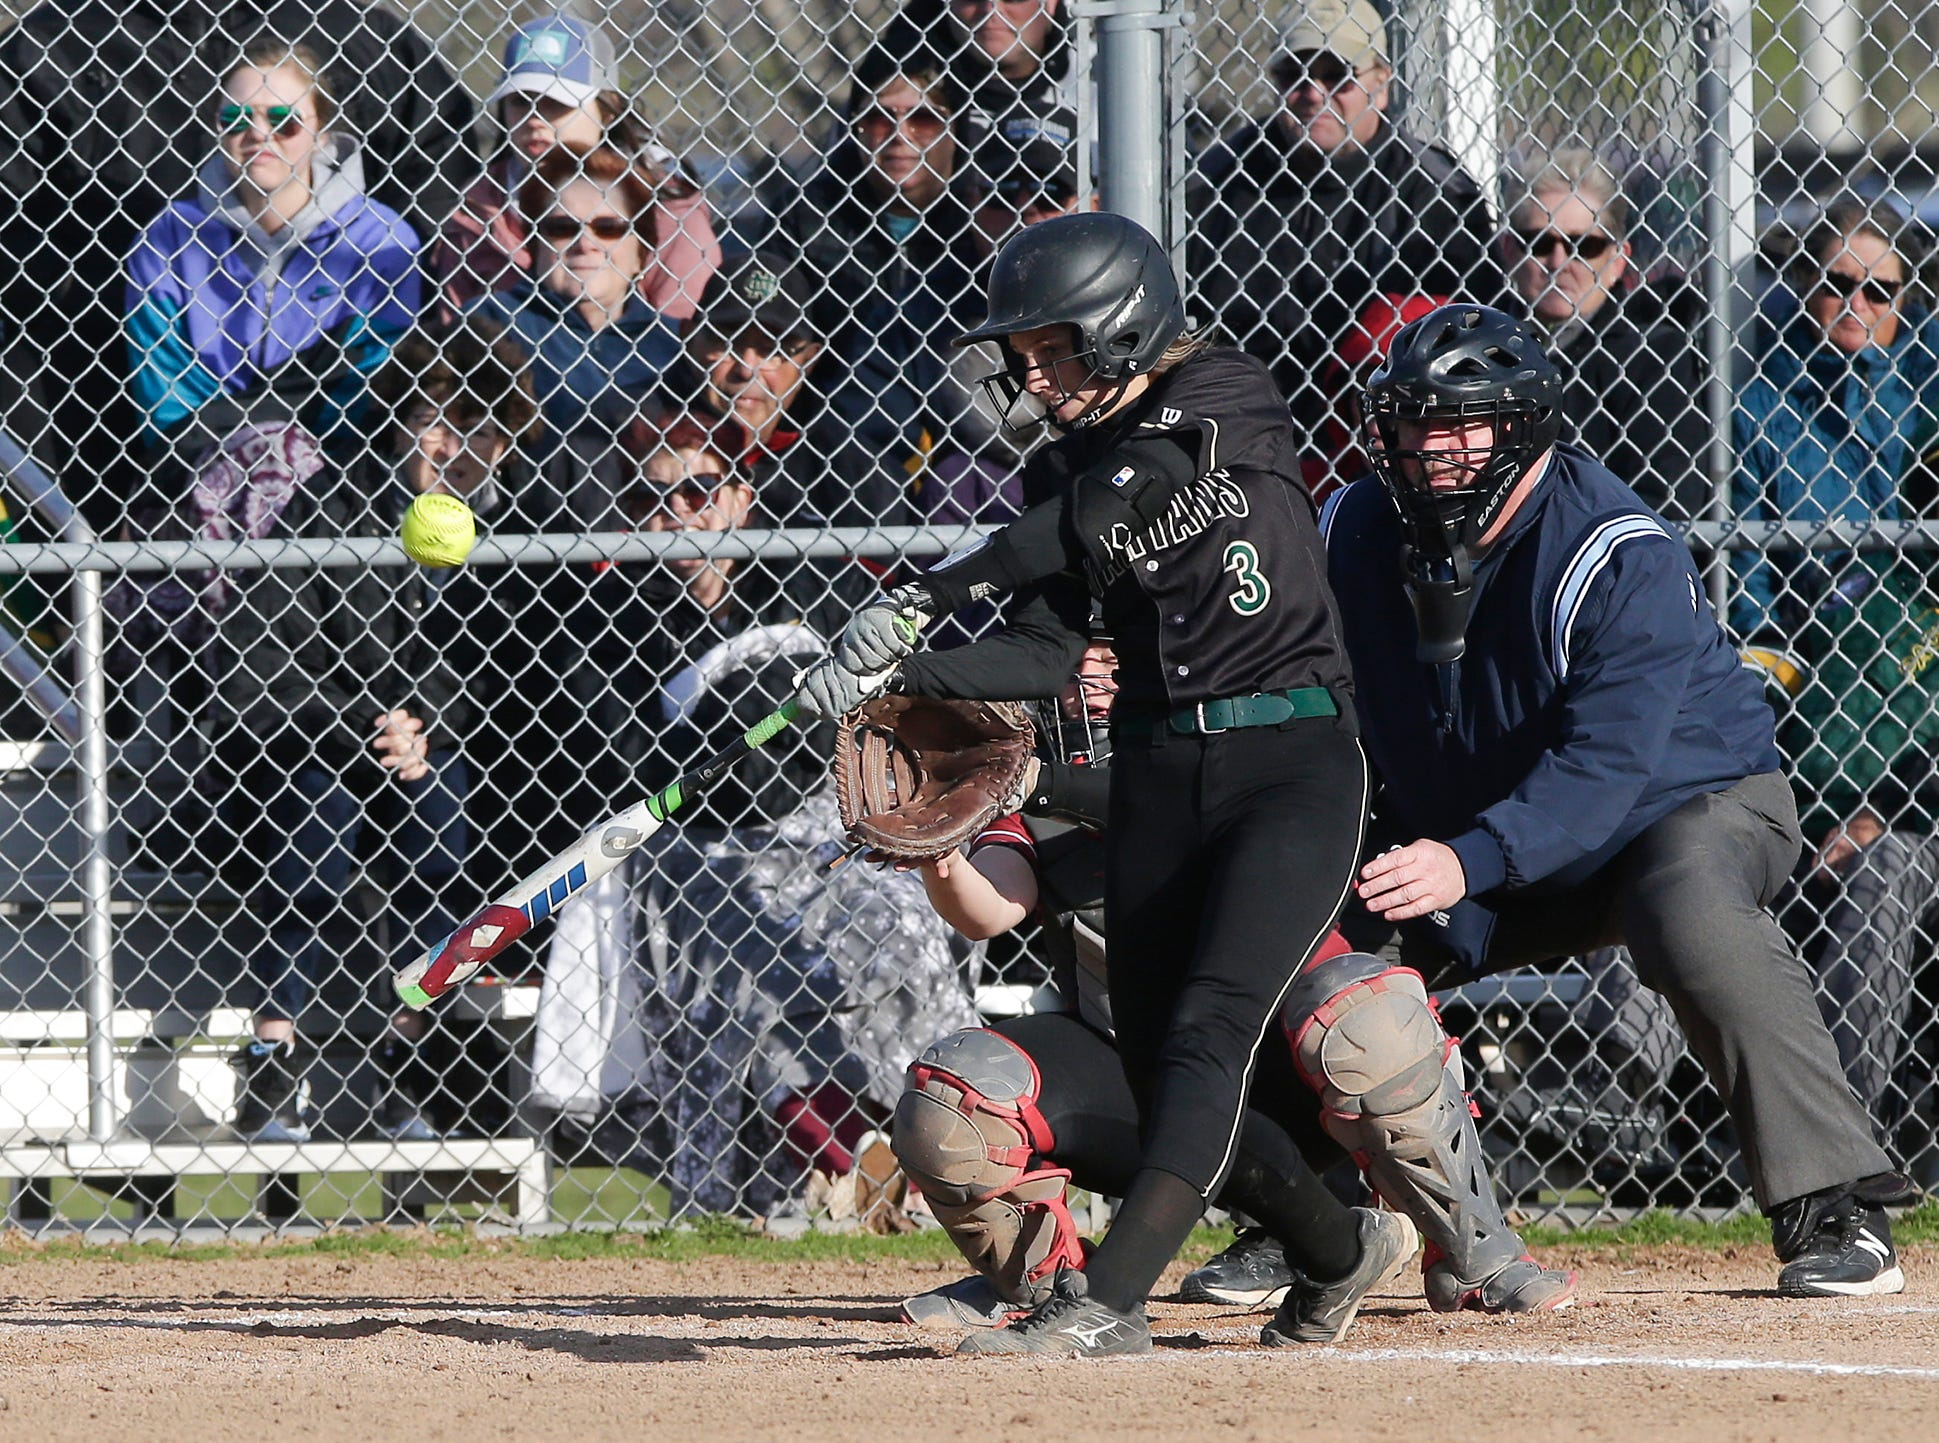 Oshkosh North High School softball's Courtney Day swings at a pitch against Fond du Lac High School during their game Friday, April 26, 2019 in Fond du Lac, Wis. Doug Raflik/USA TODAY NETWORK-Wisconsin